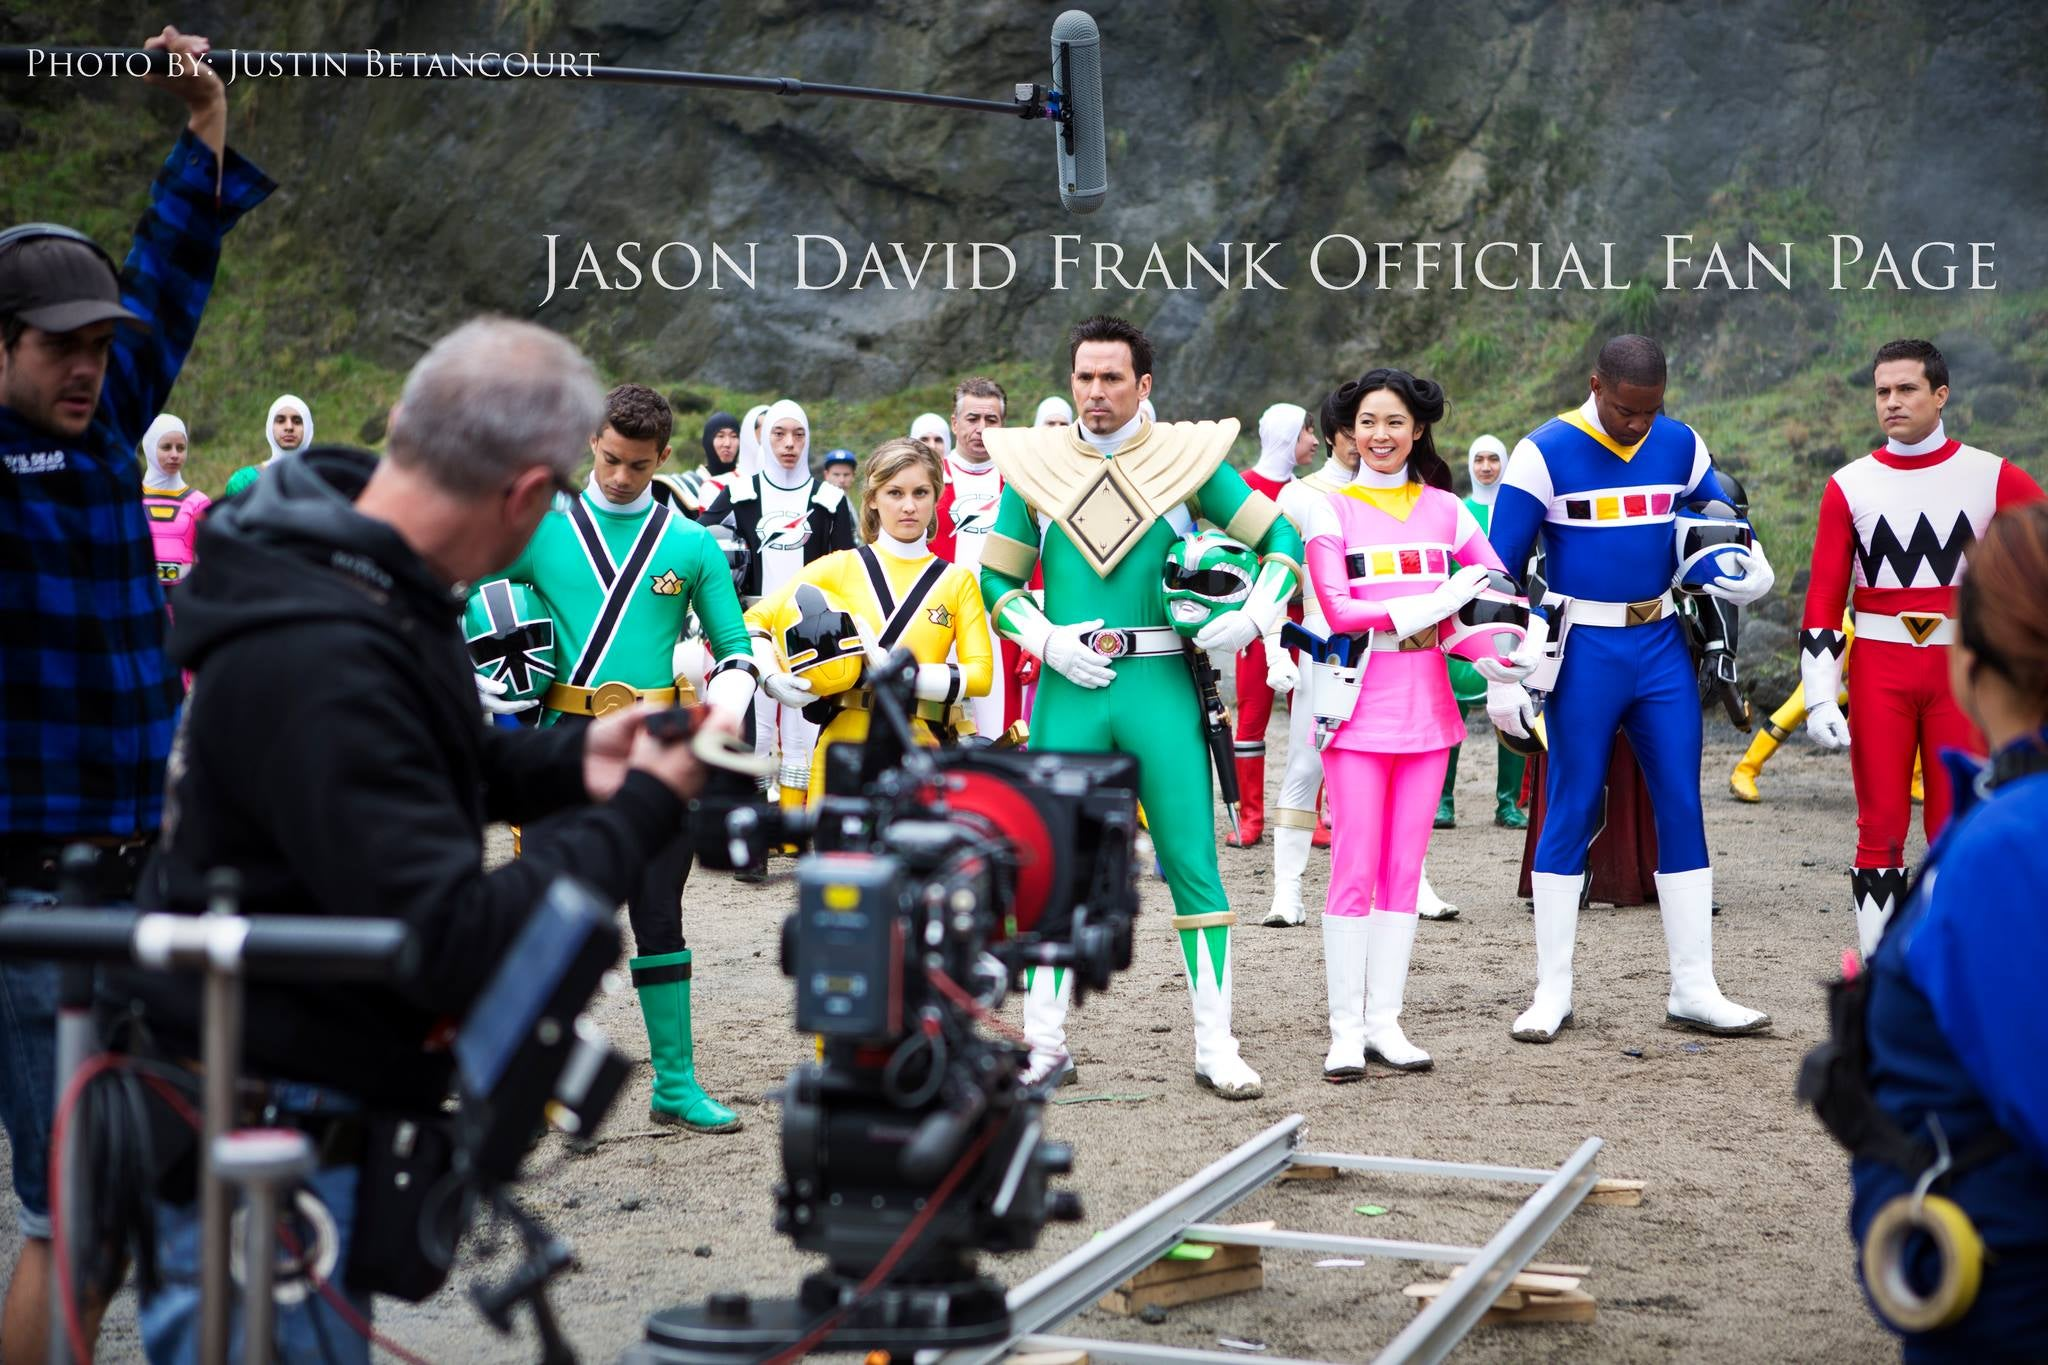 Power Rangers Megaforce Set Photos Reveal Returning Cast